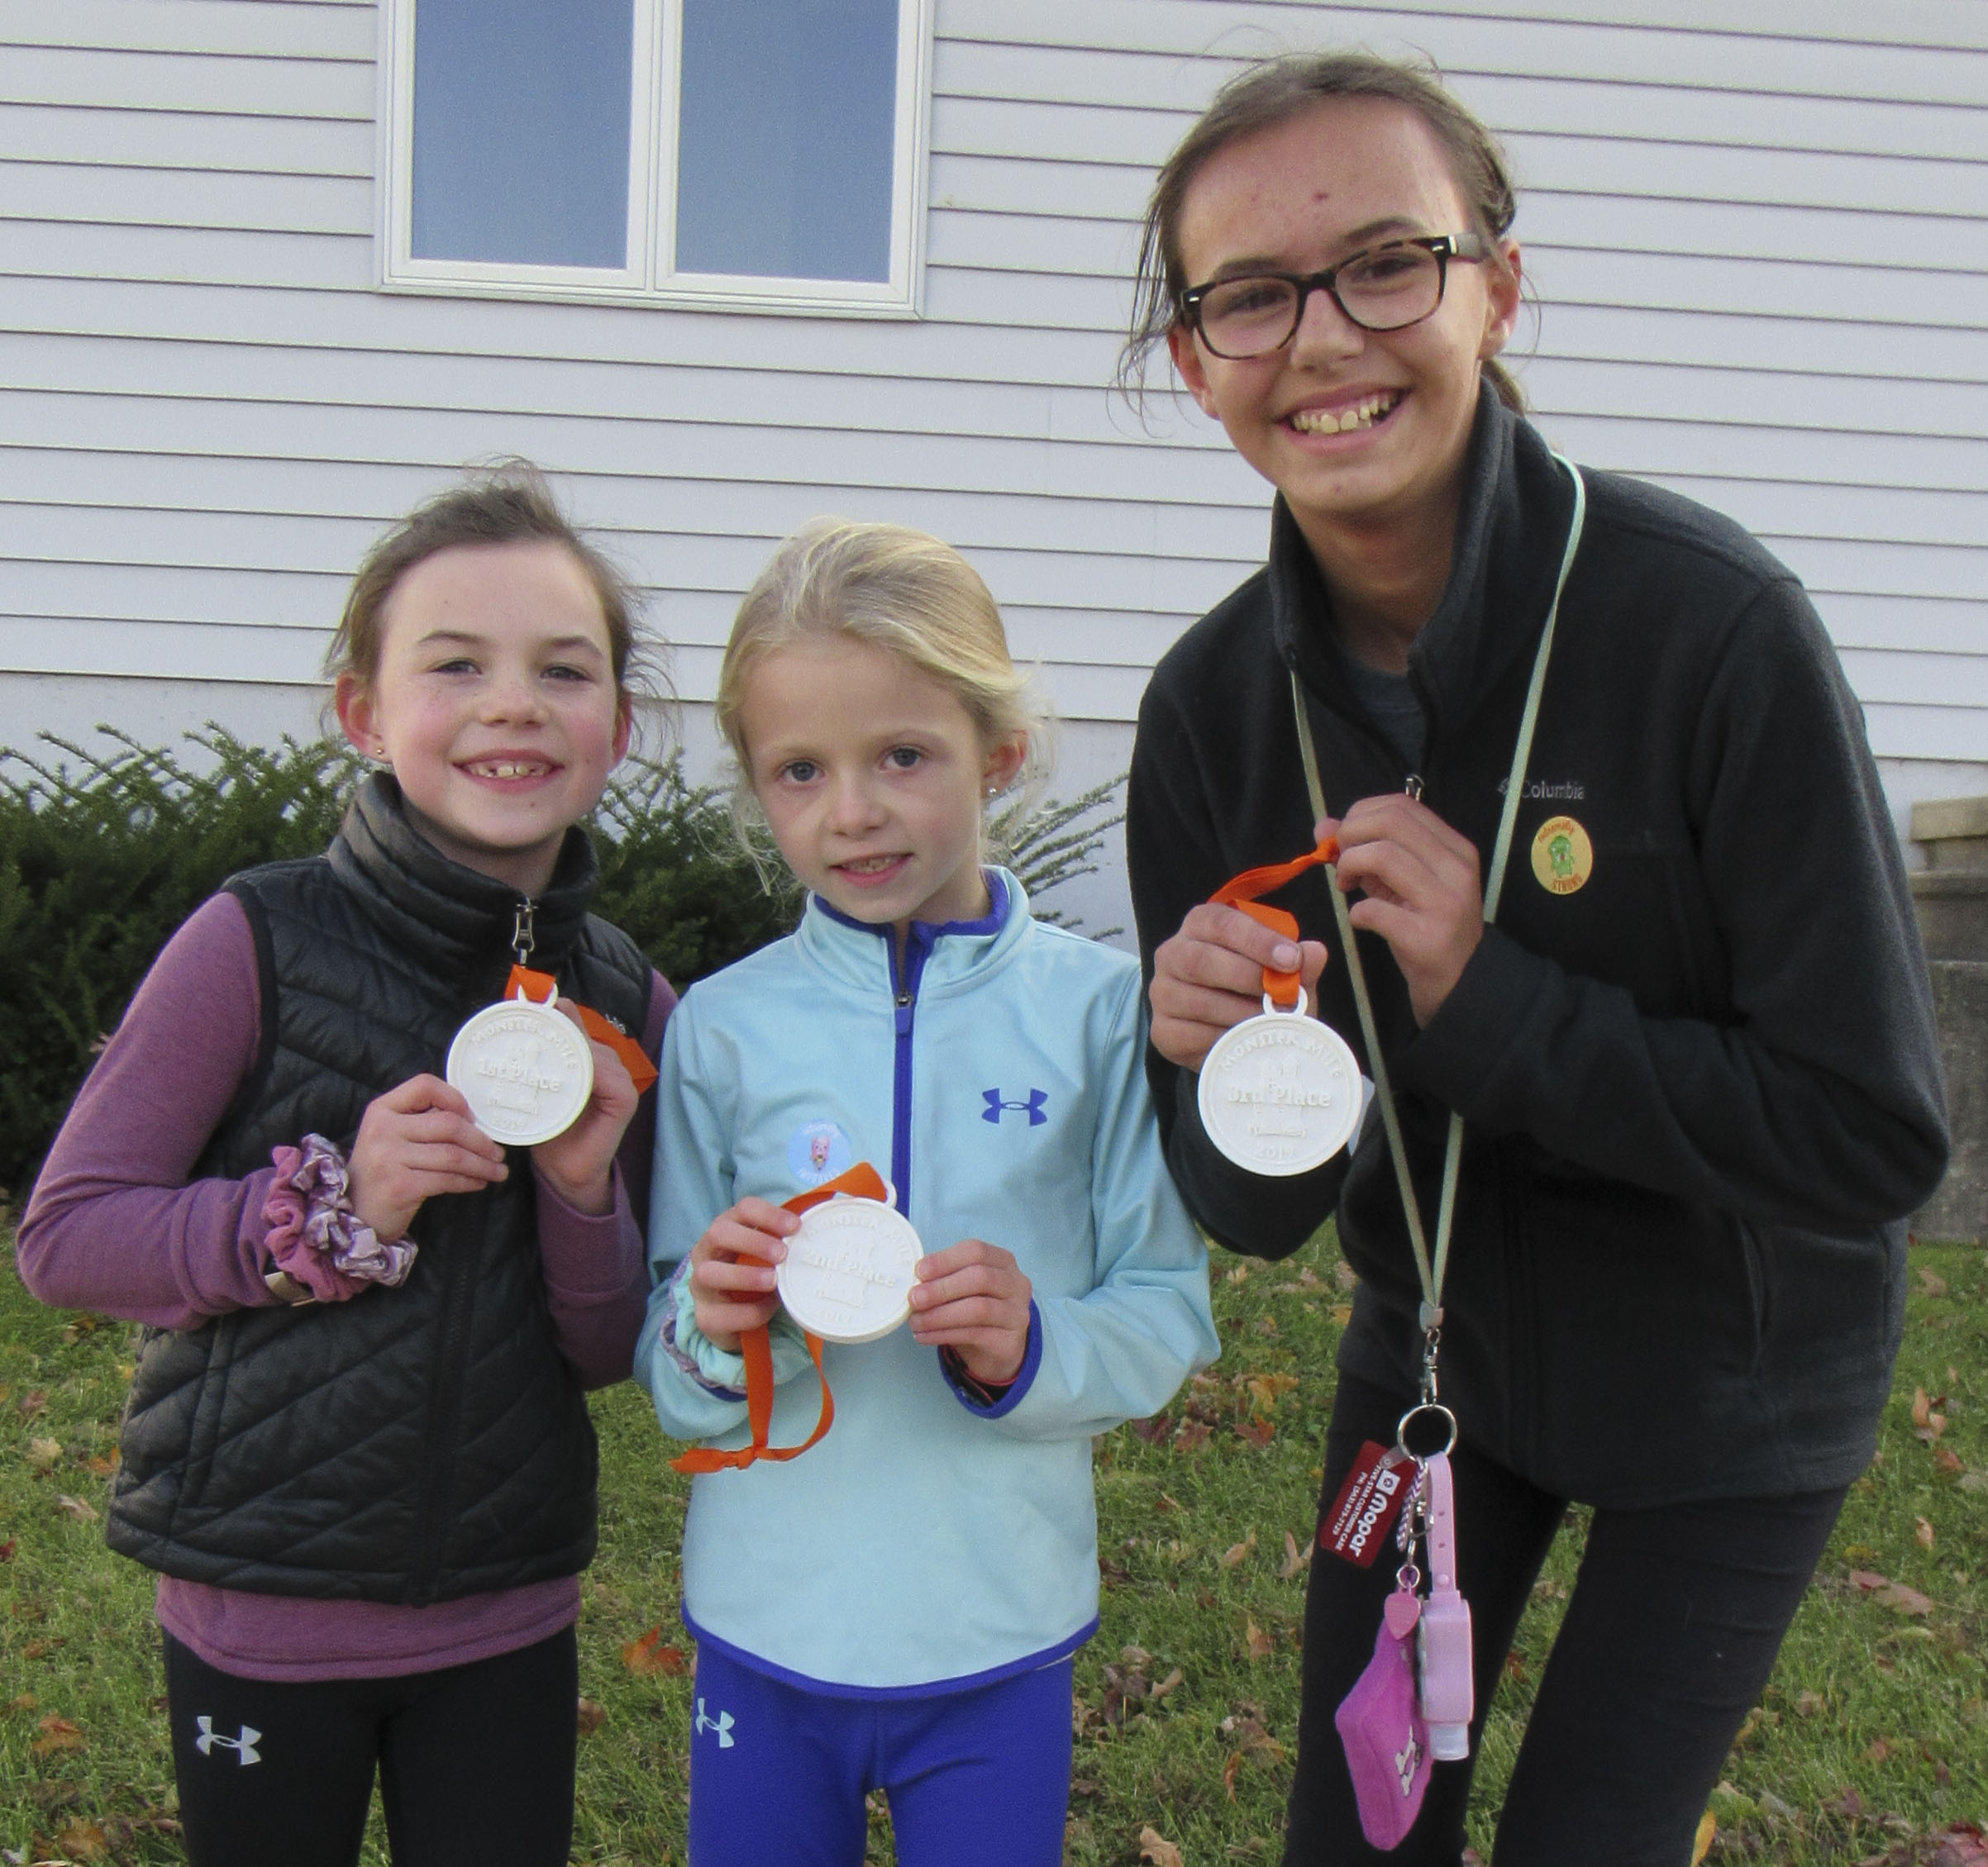 The top three female finishers of the Monster Mile/ Dash were, from left, Julia Ries, Rielle Henderson, and Nevaeh Norton.